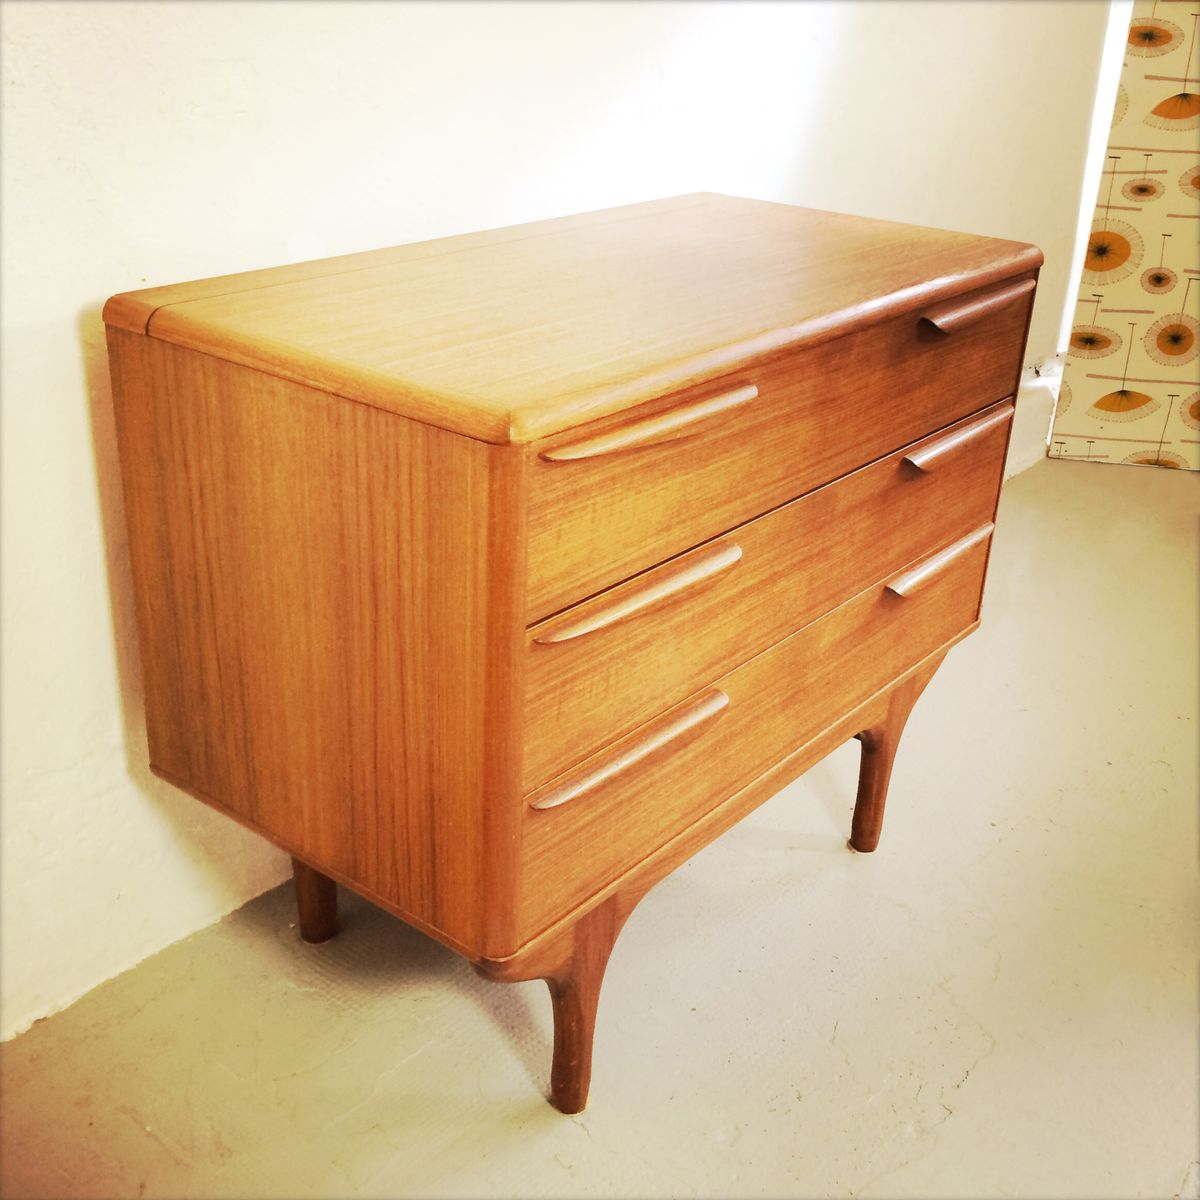 French chest of drawers from meubles tv 1950s for sale at for Meuble 1950